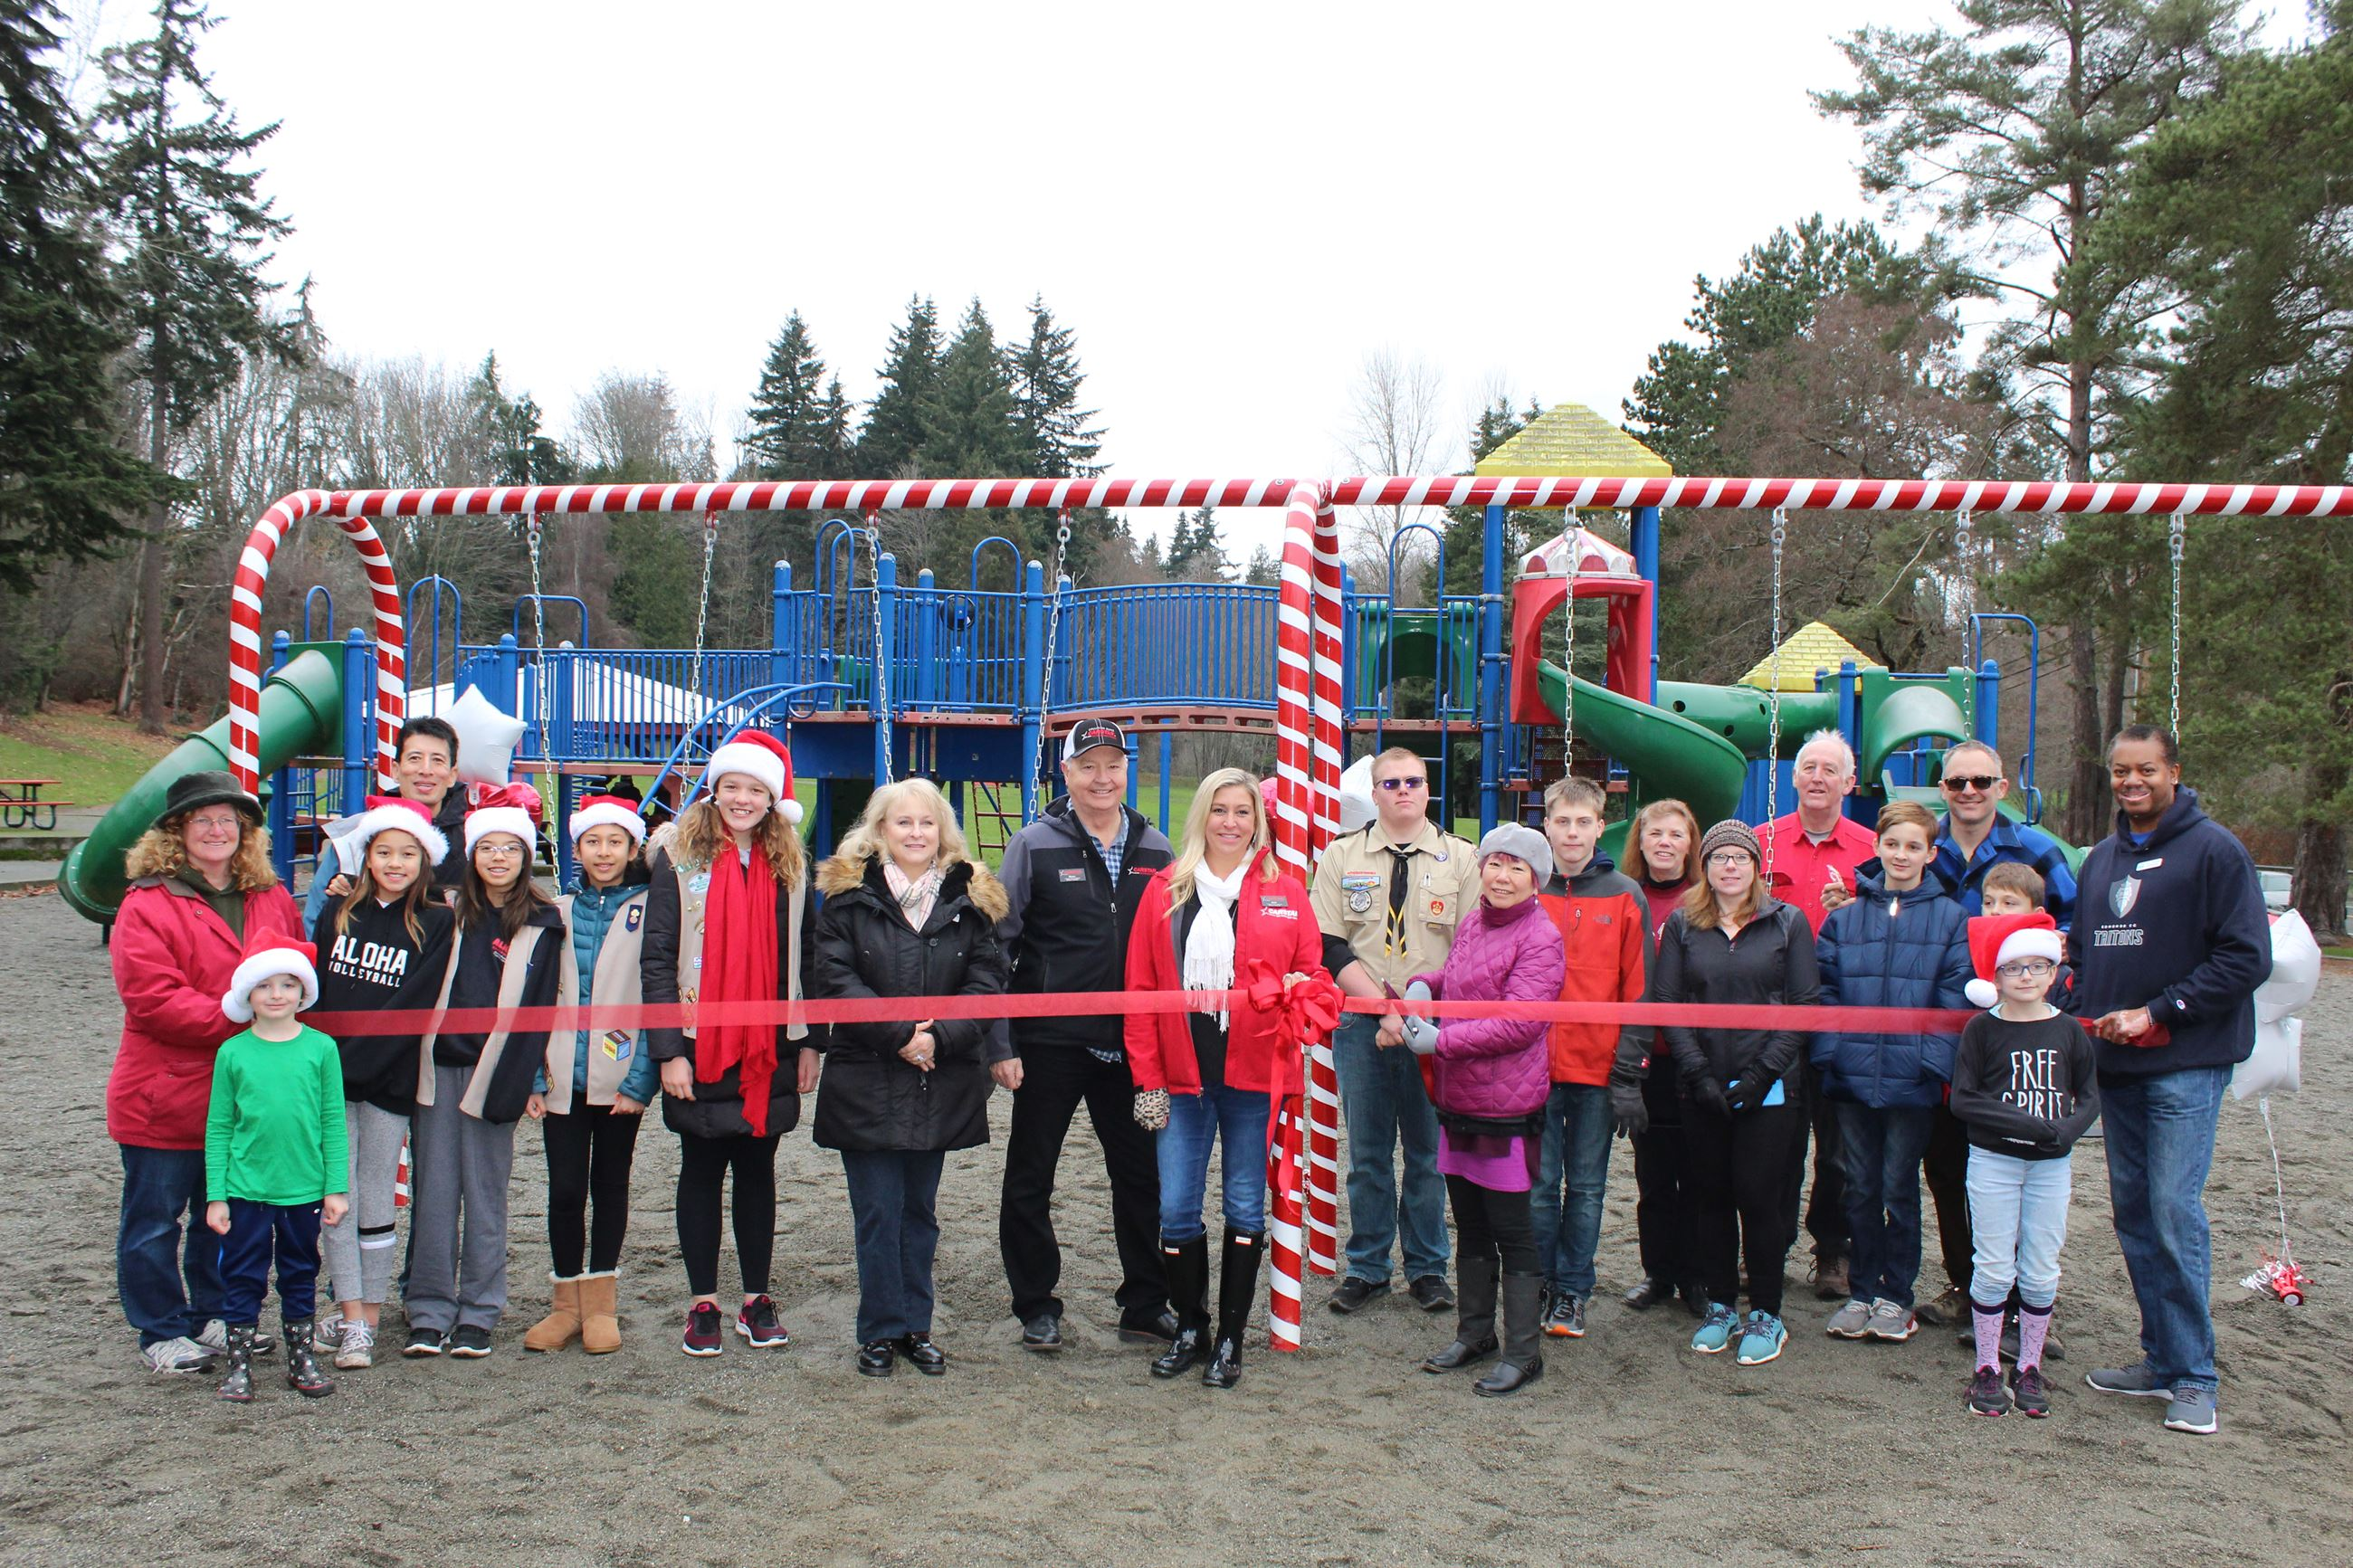 Ribbon Cutting Ceremony at Terrace Creek Park